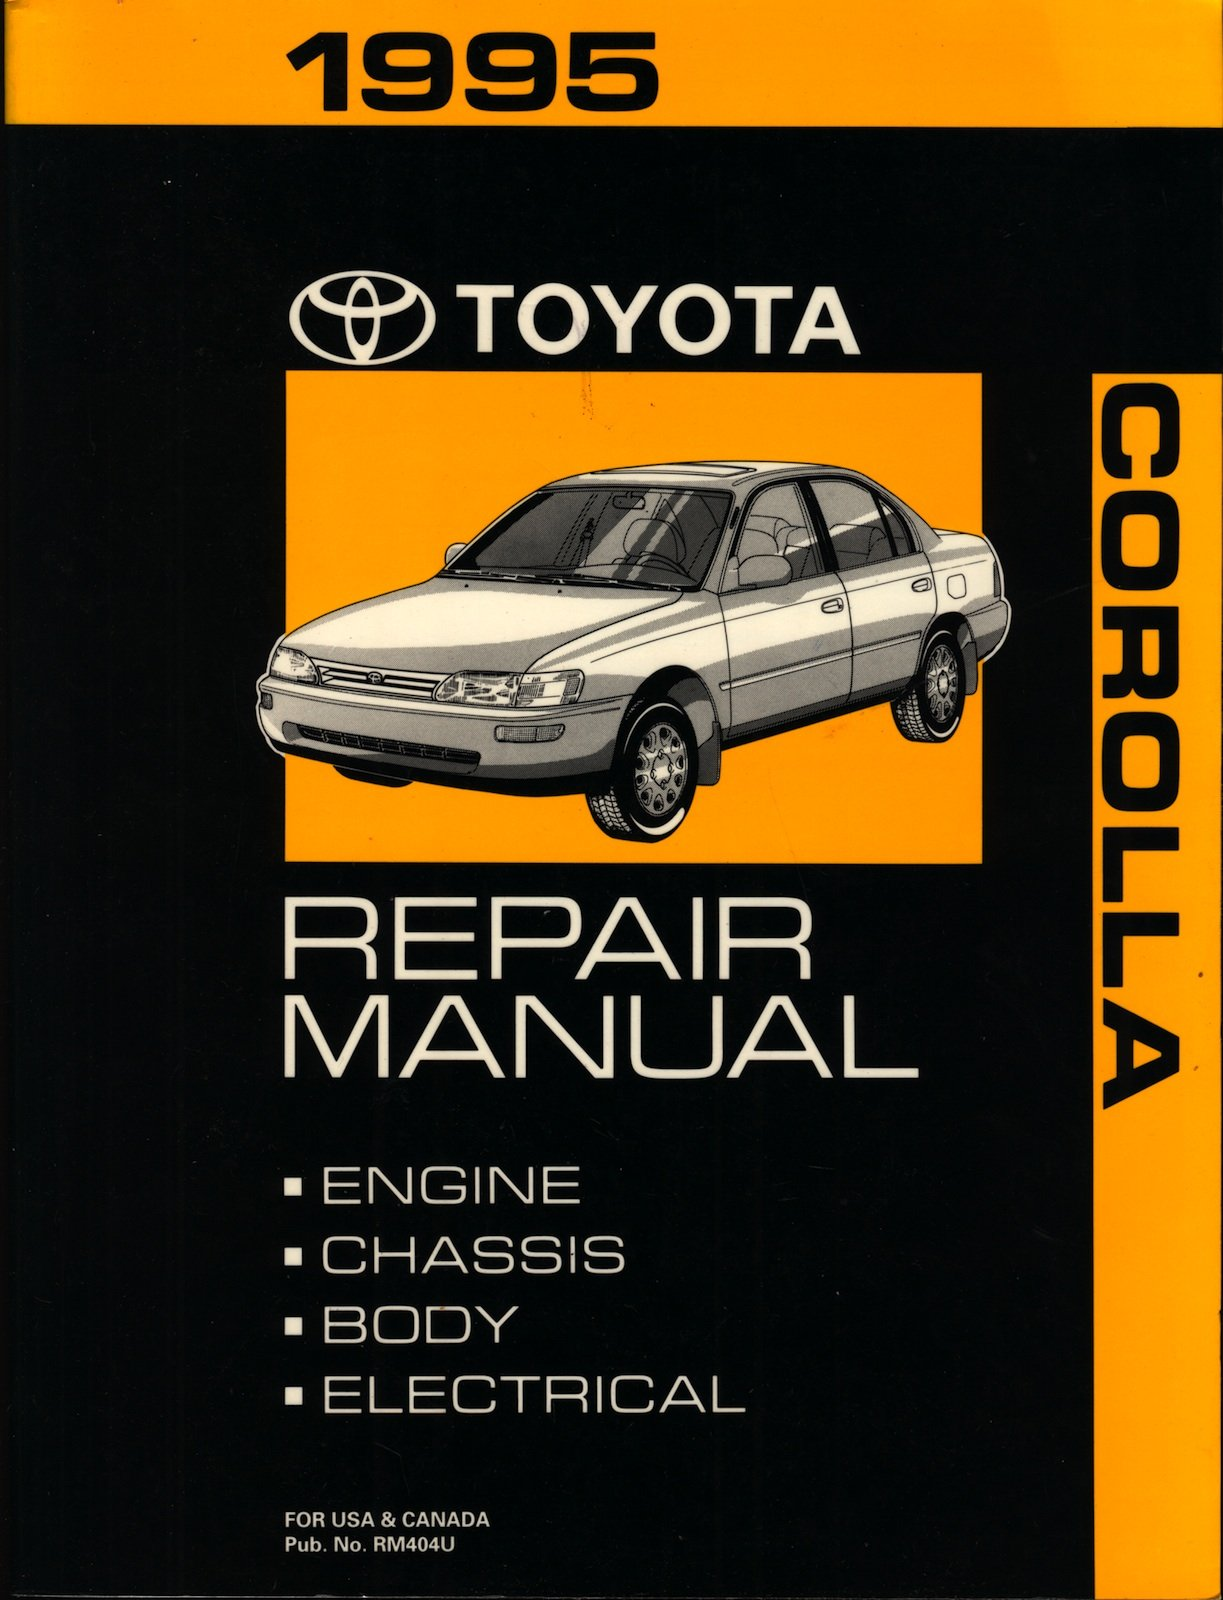 97 Toyota Camry Speaker Wiring Diagram Library 2007 Corolla 1995 Repair Manual Amazon Com Books 2006 1994